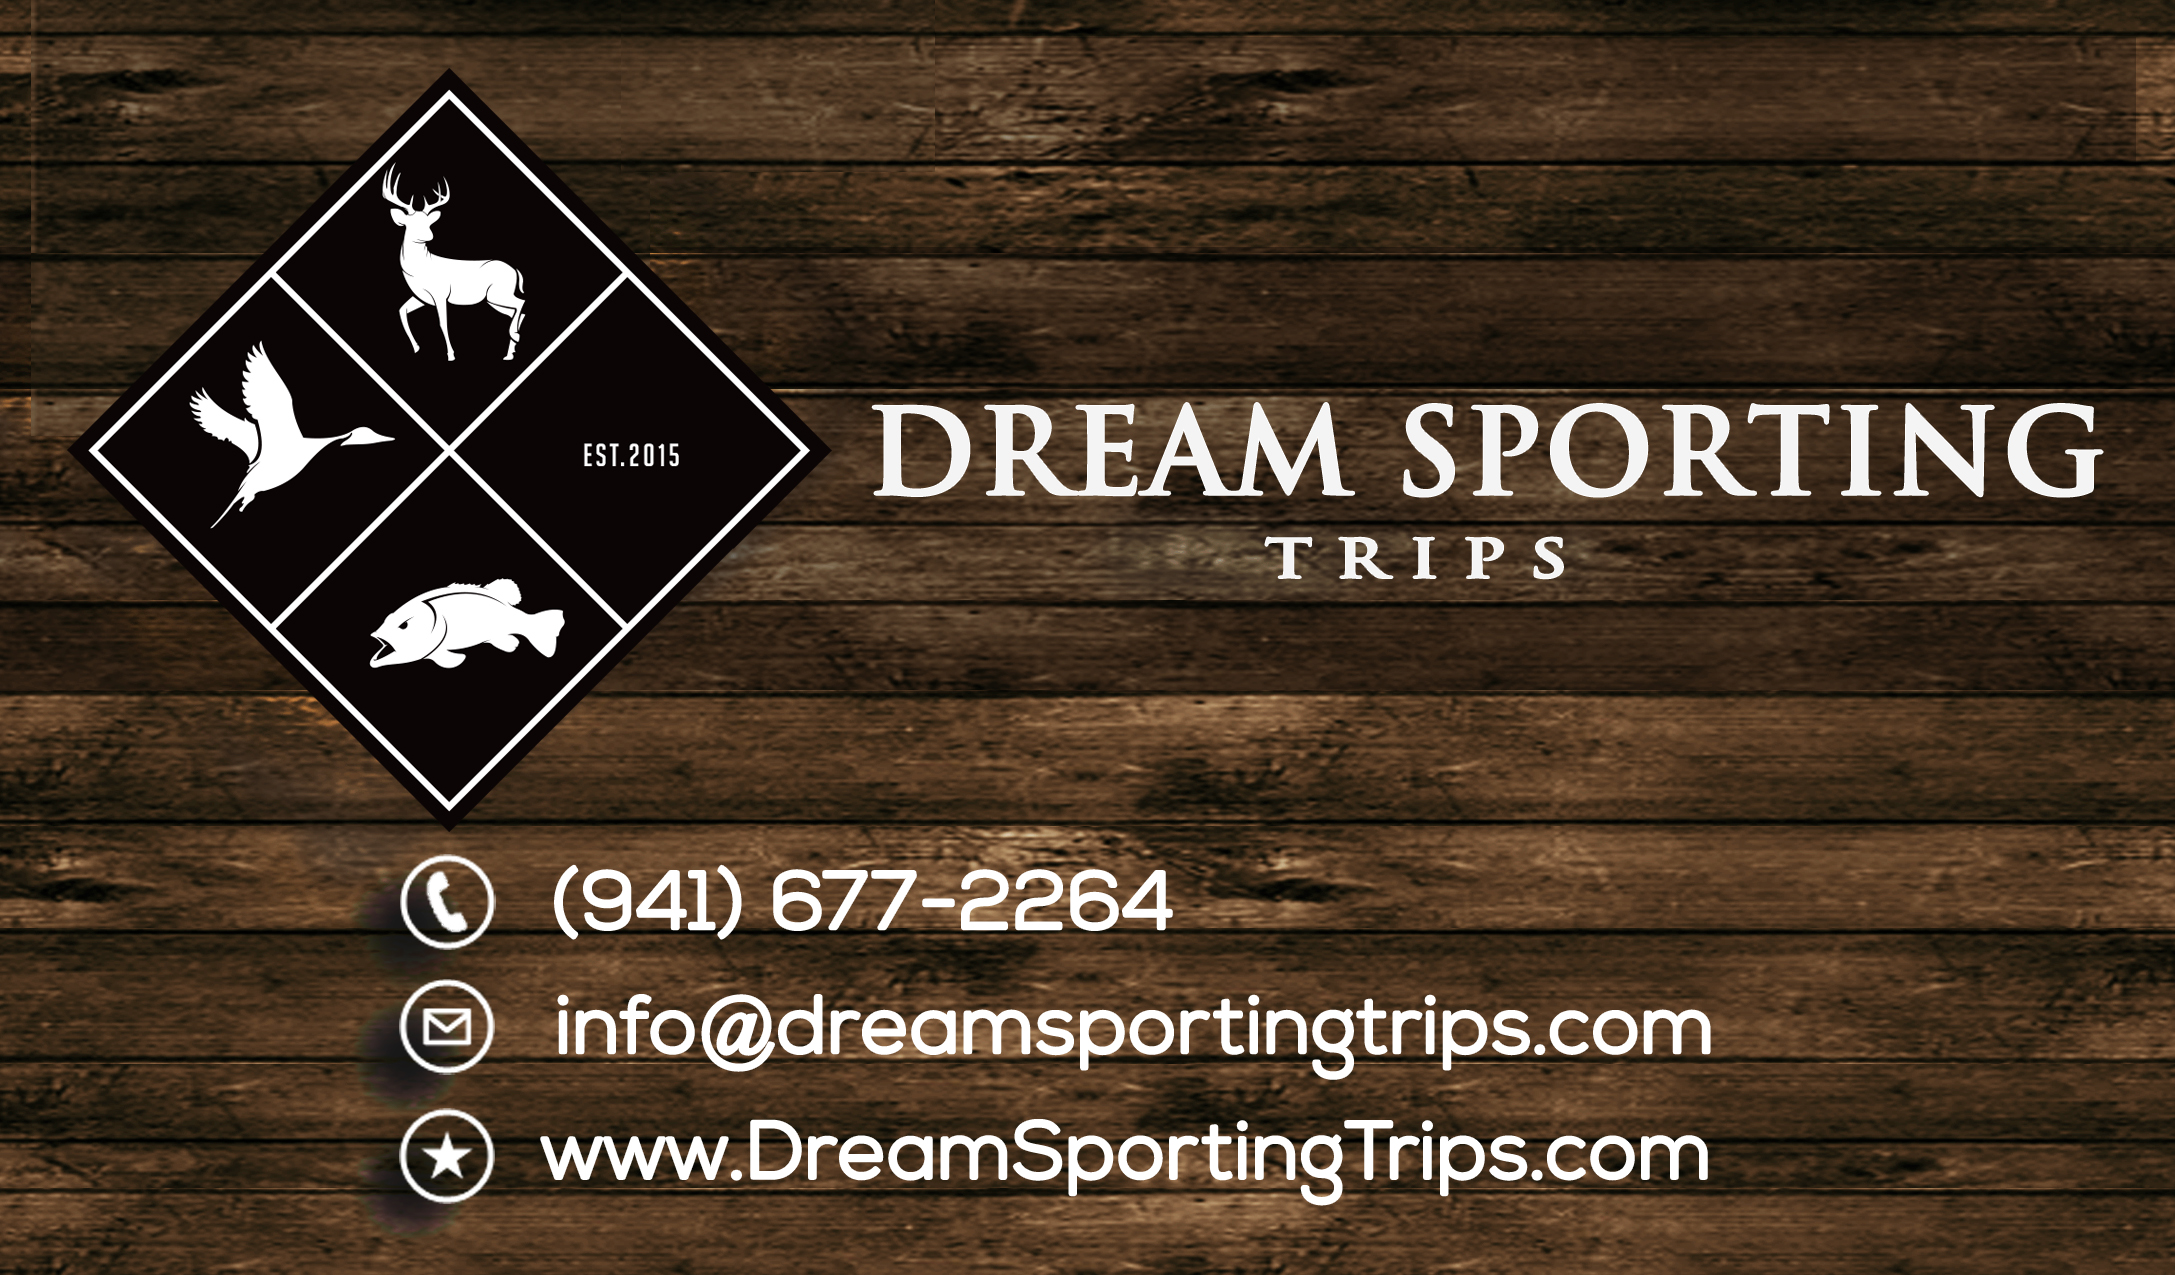 Dream Sporting Trips Front of business card